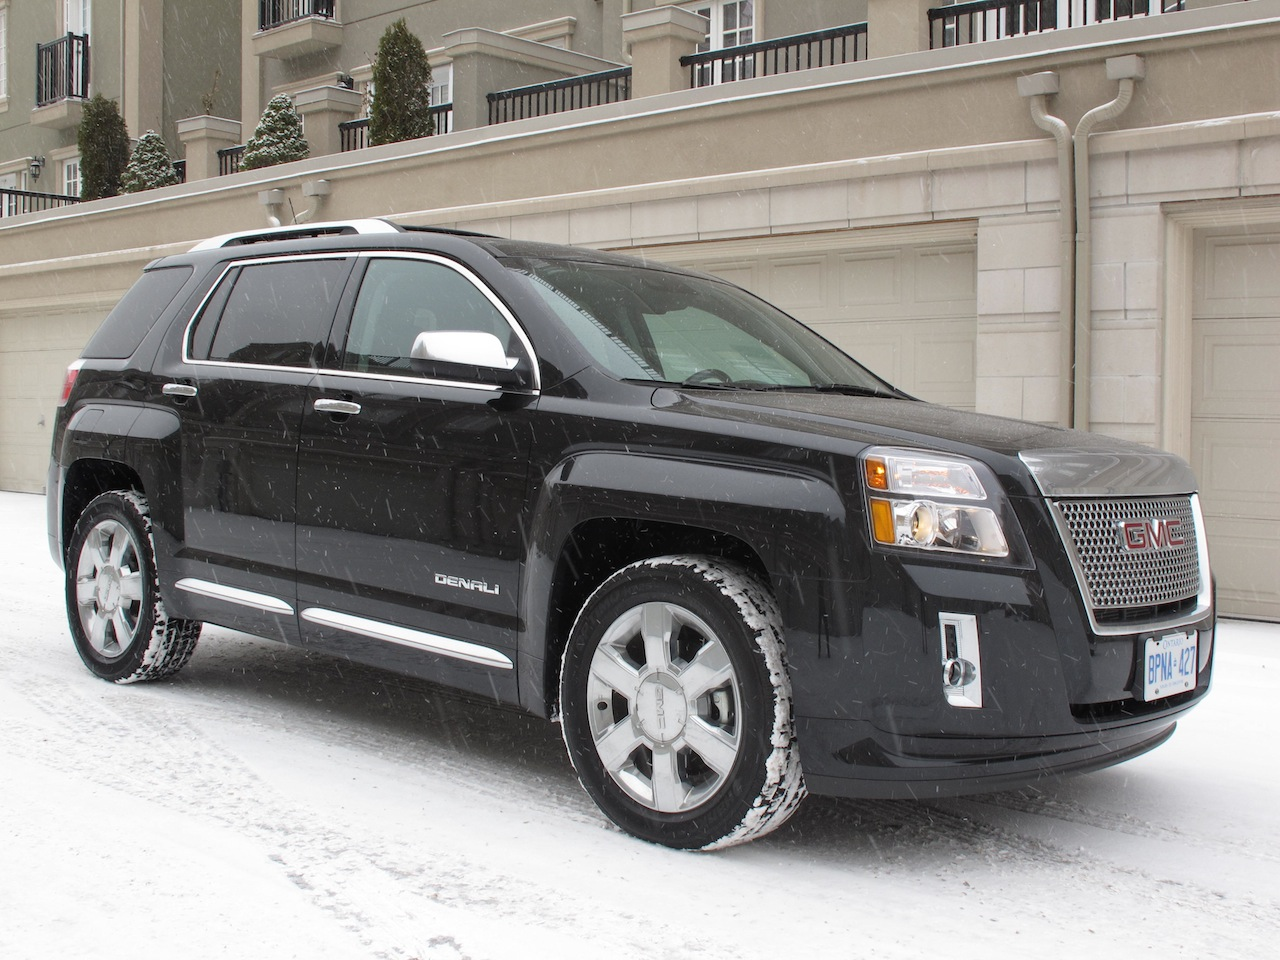 terrain a american gmc crossover first drive review premium